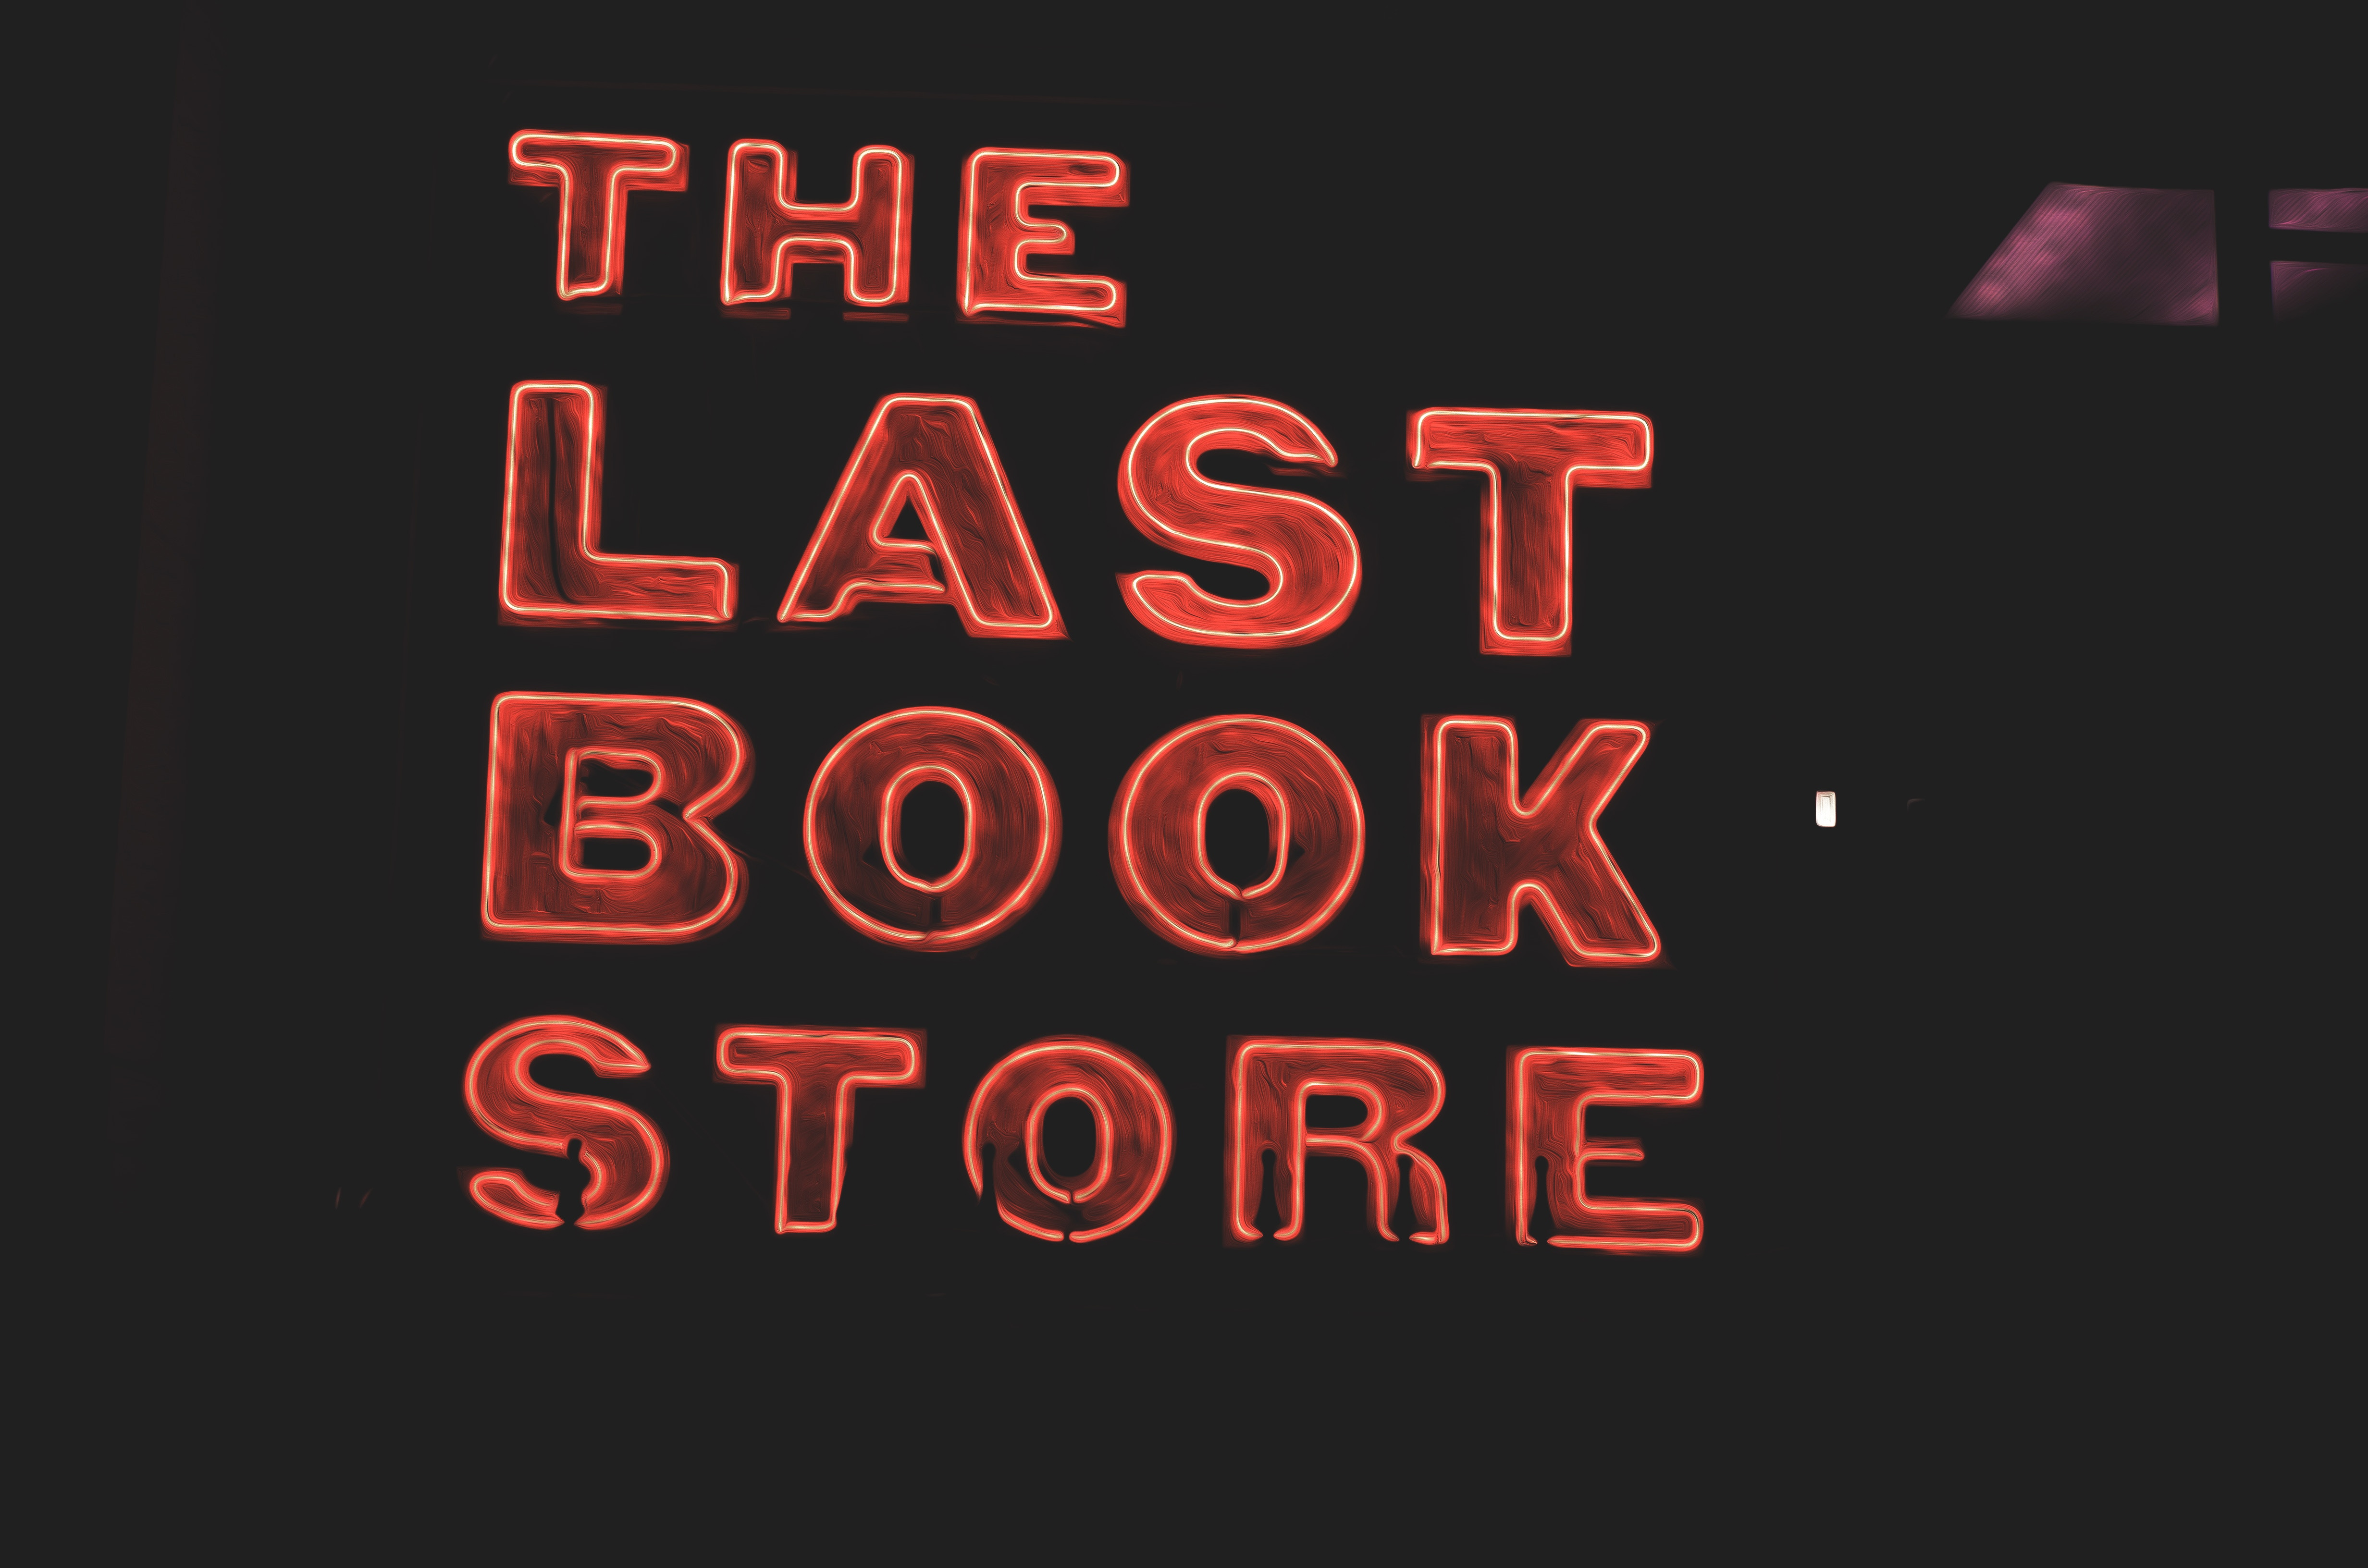 A picture of a neon sign for The Last Book Store